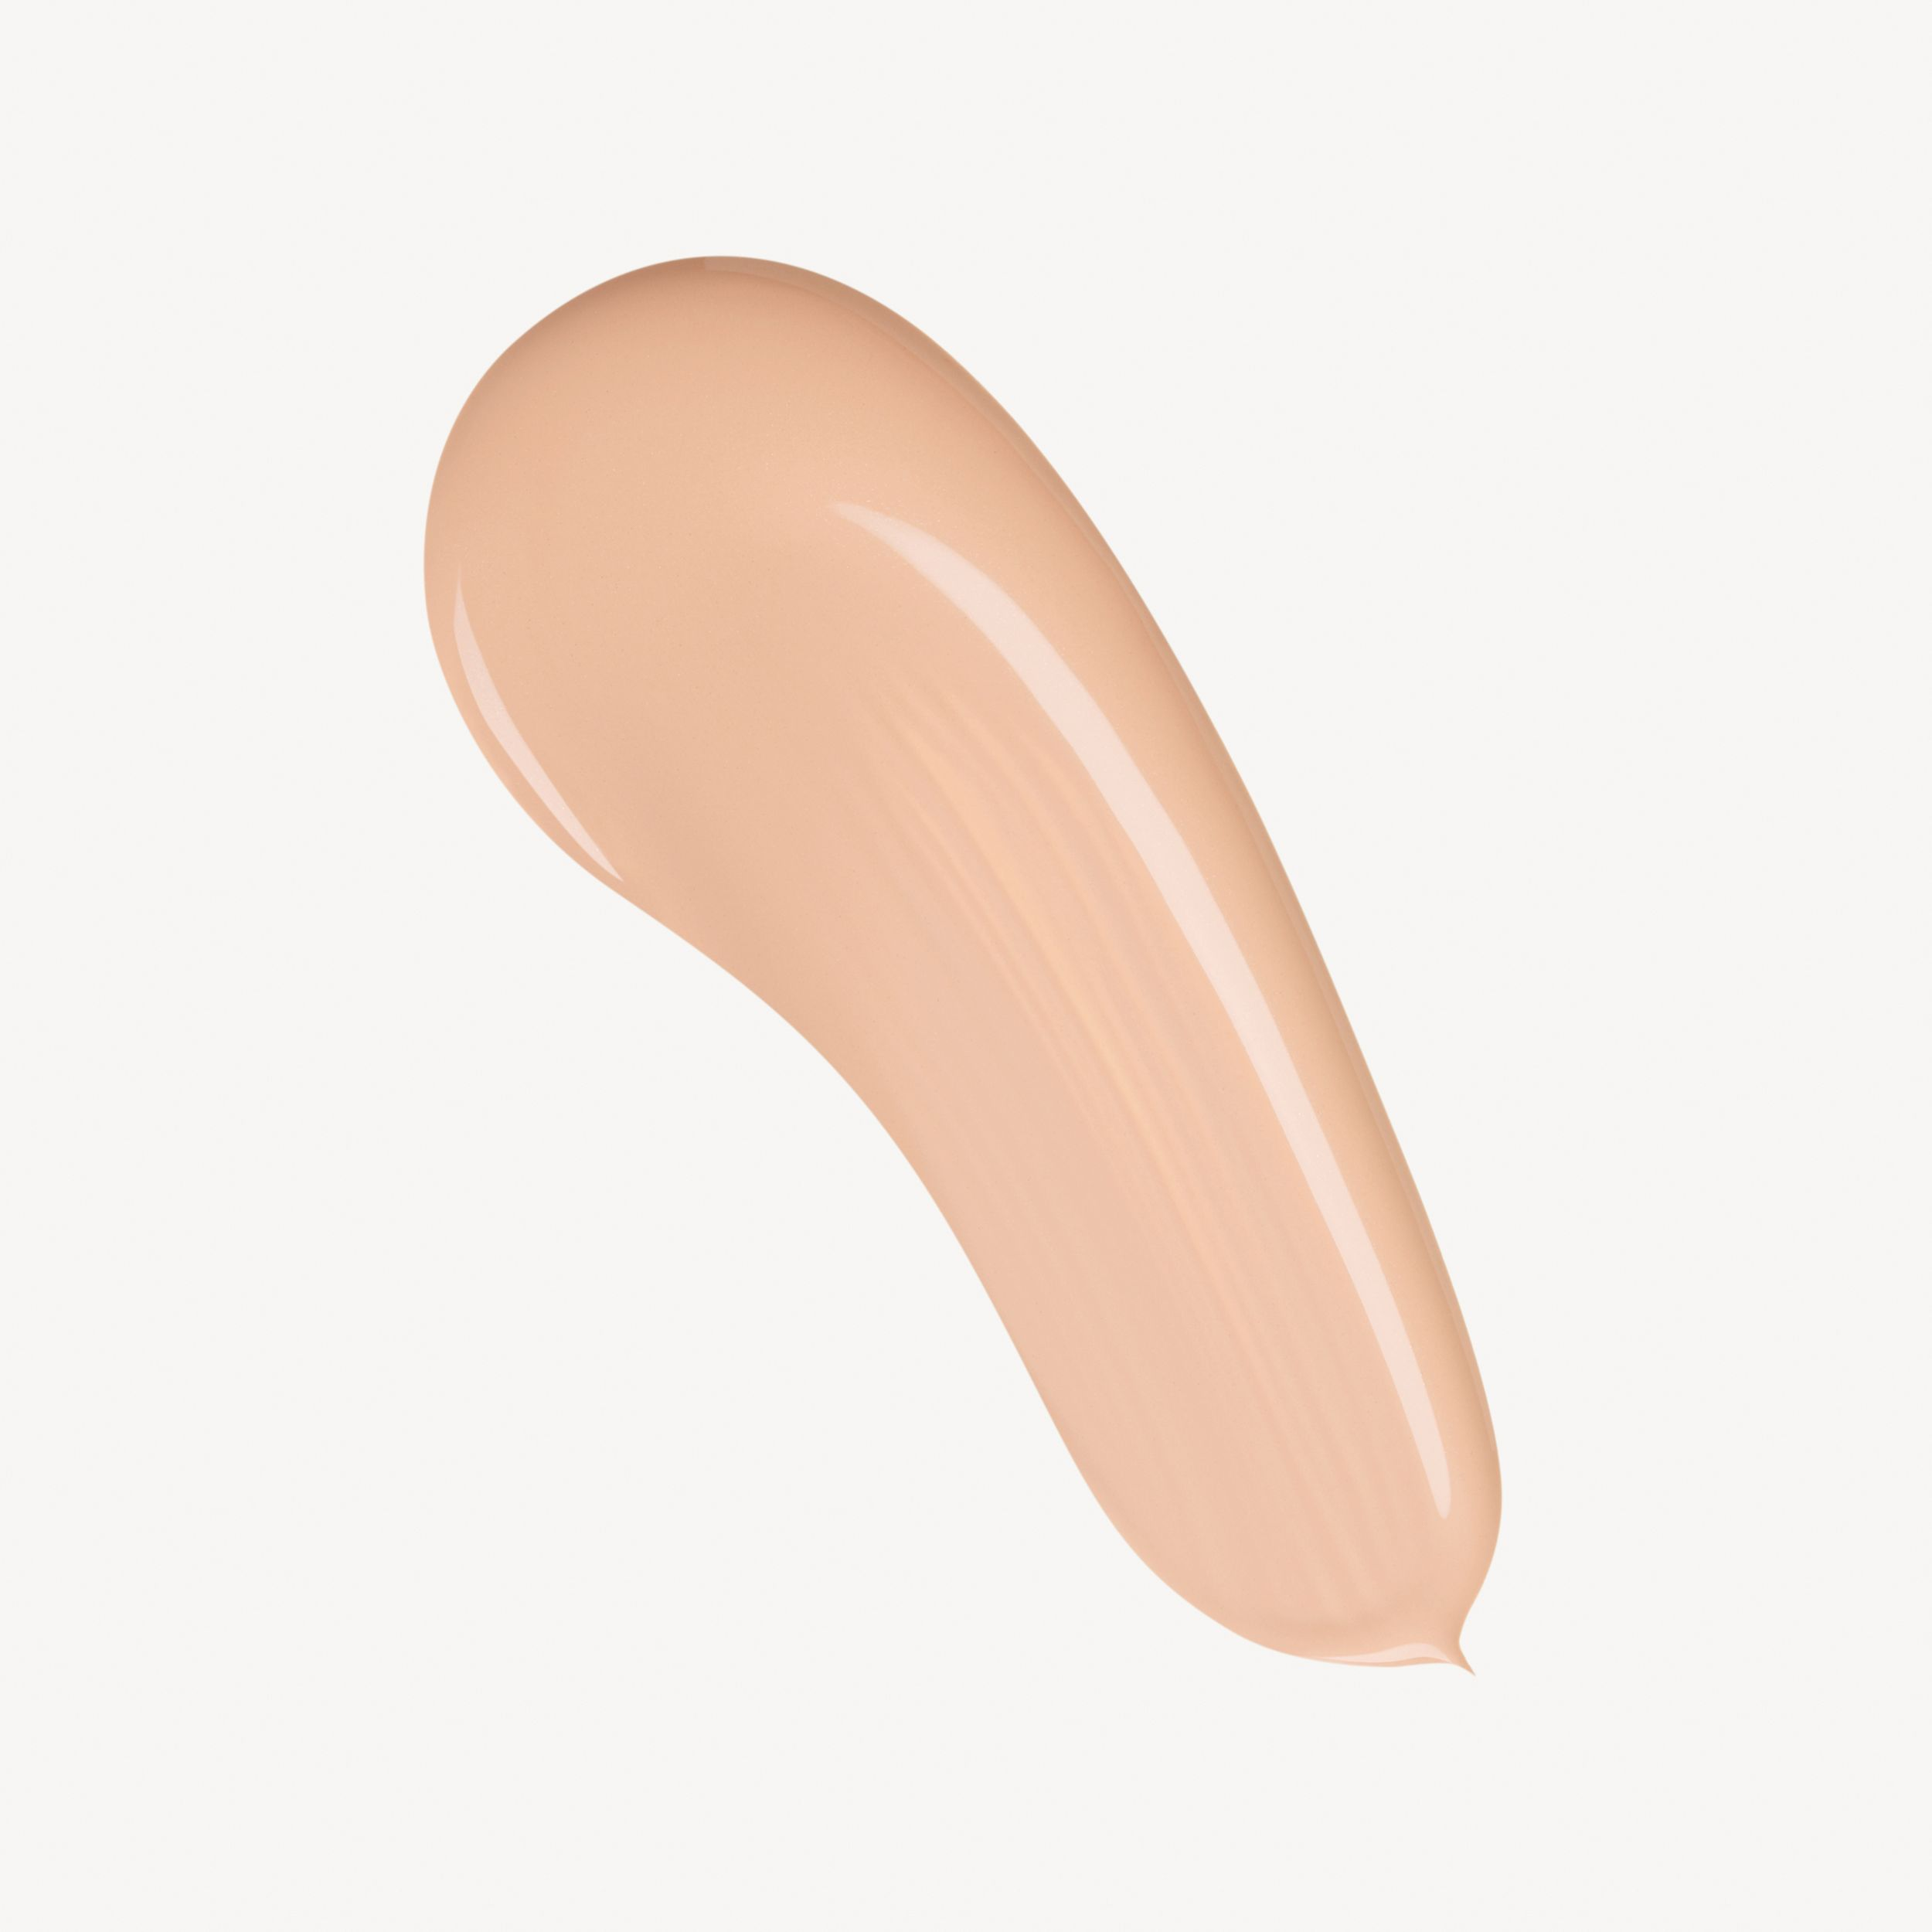 Fresh Glow Foundation SPF 15 PA+++ – Ochre Nude No.12 - Women | Burberry Australia - 2